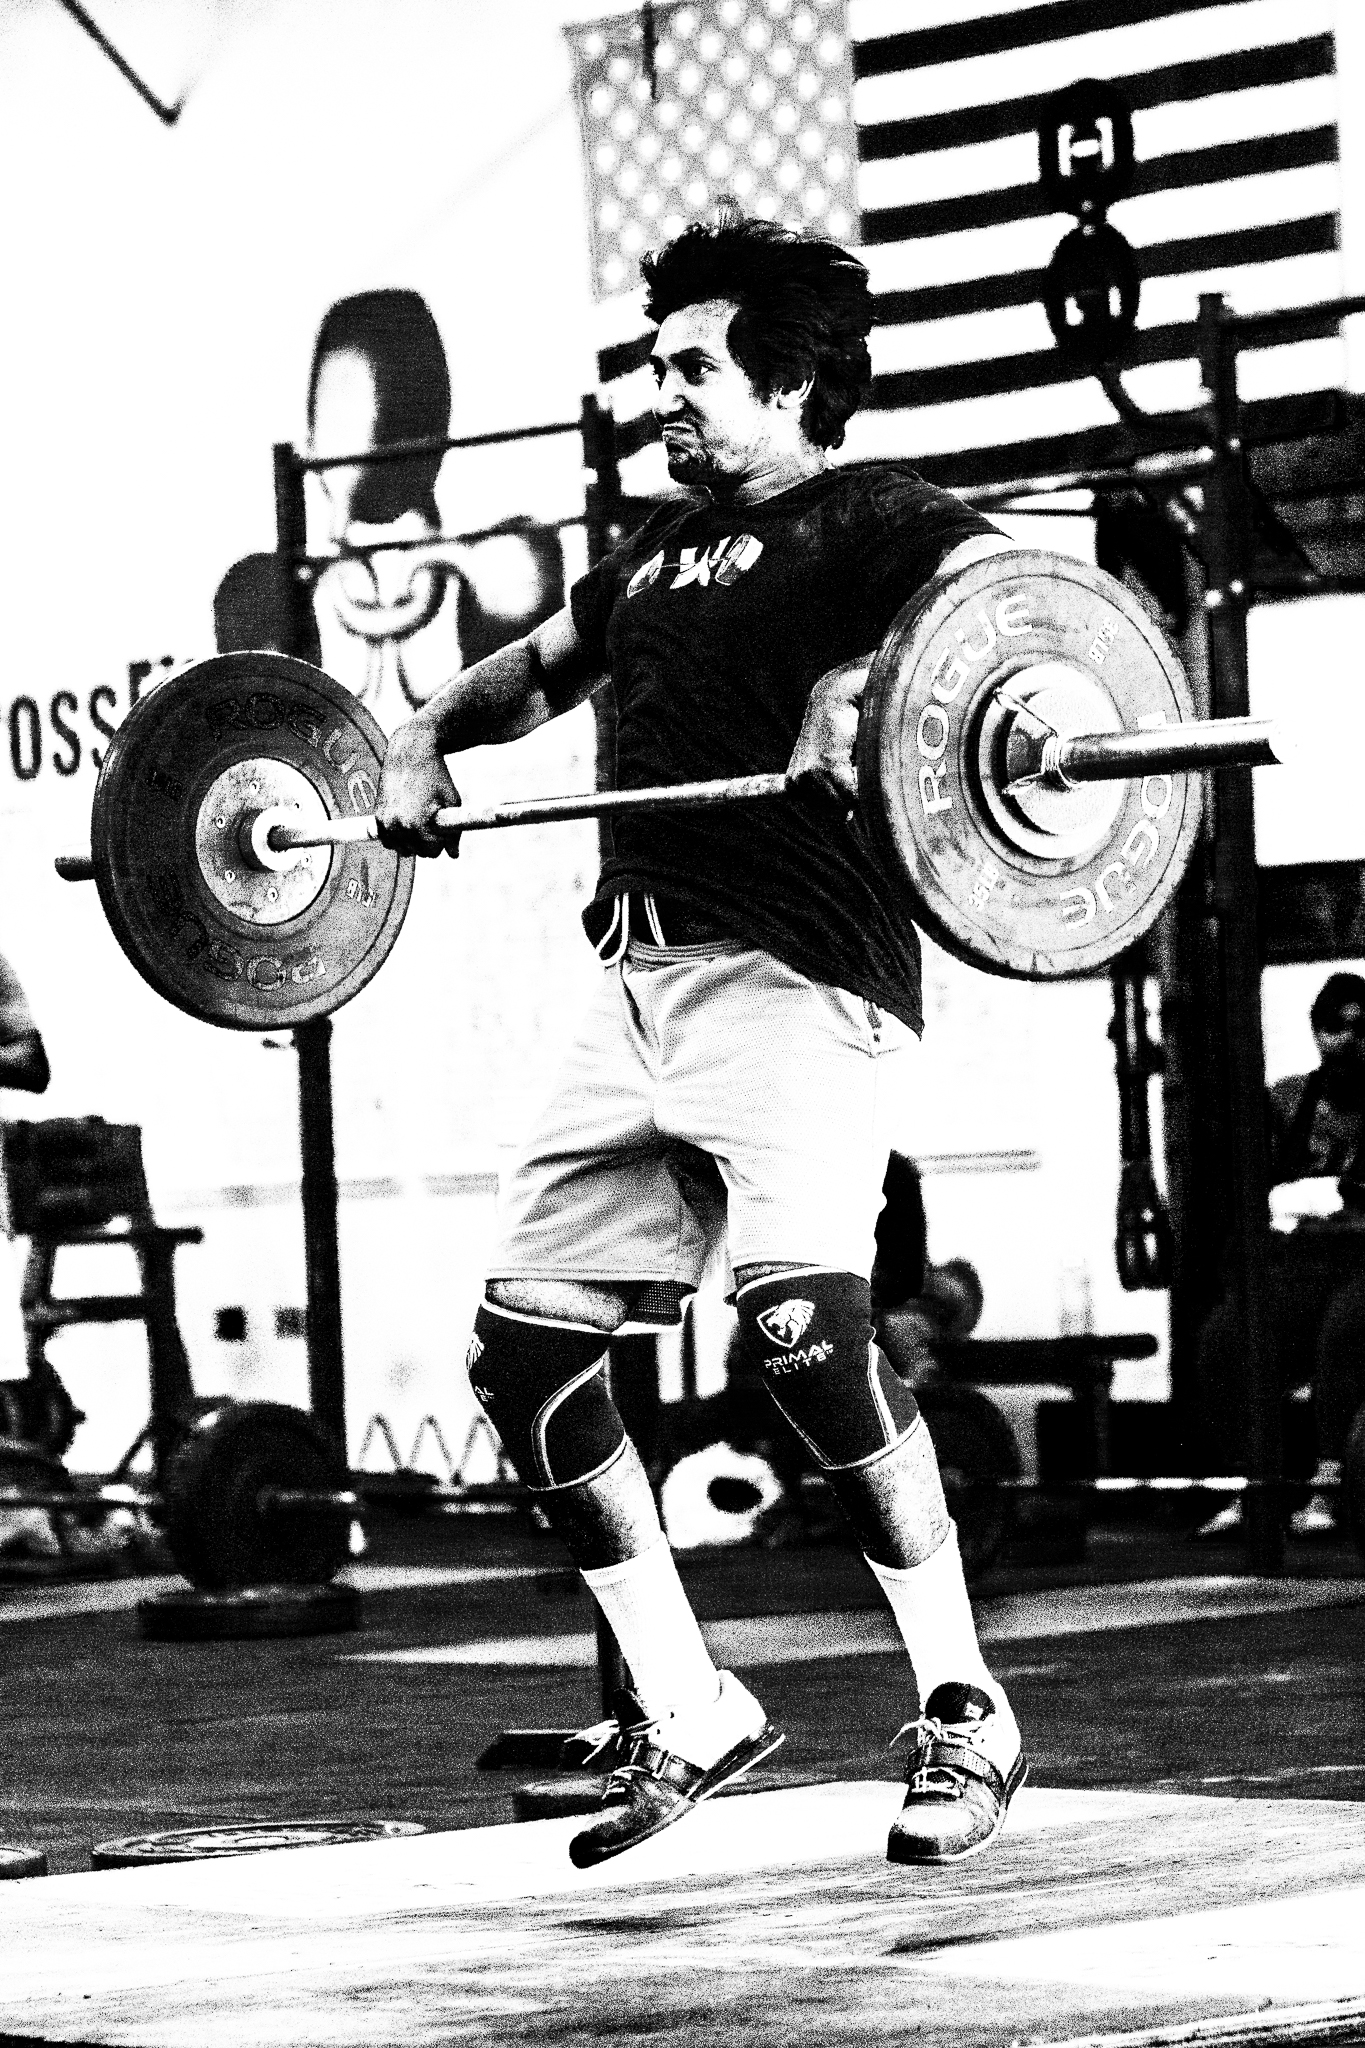 lift-for-purpose-weightlifting-meet-crossfit-strongtown-everyday-lifters (27 of 40).jpg